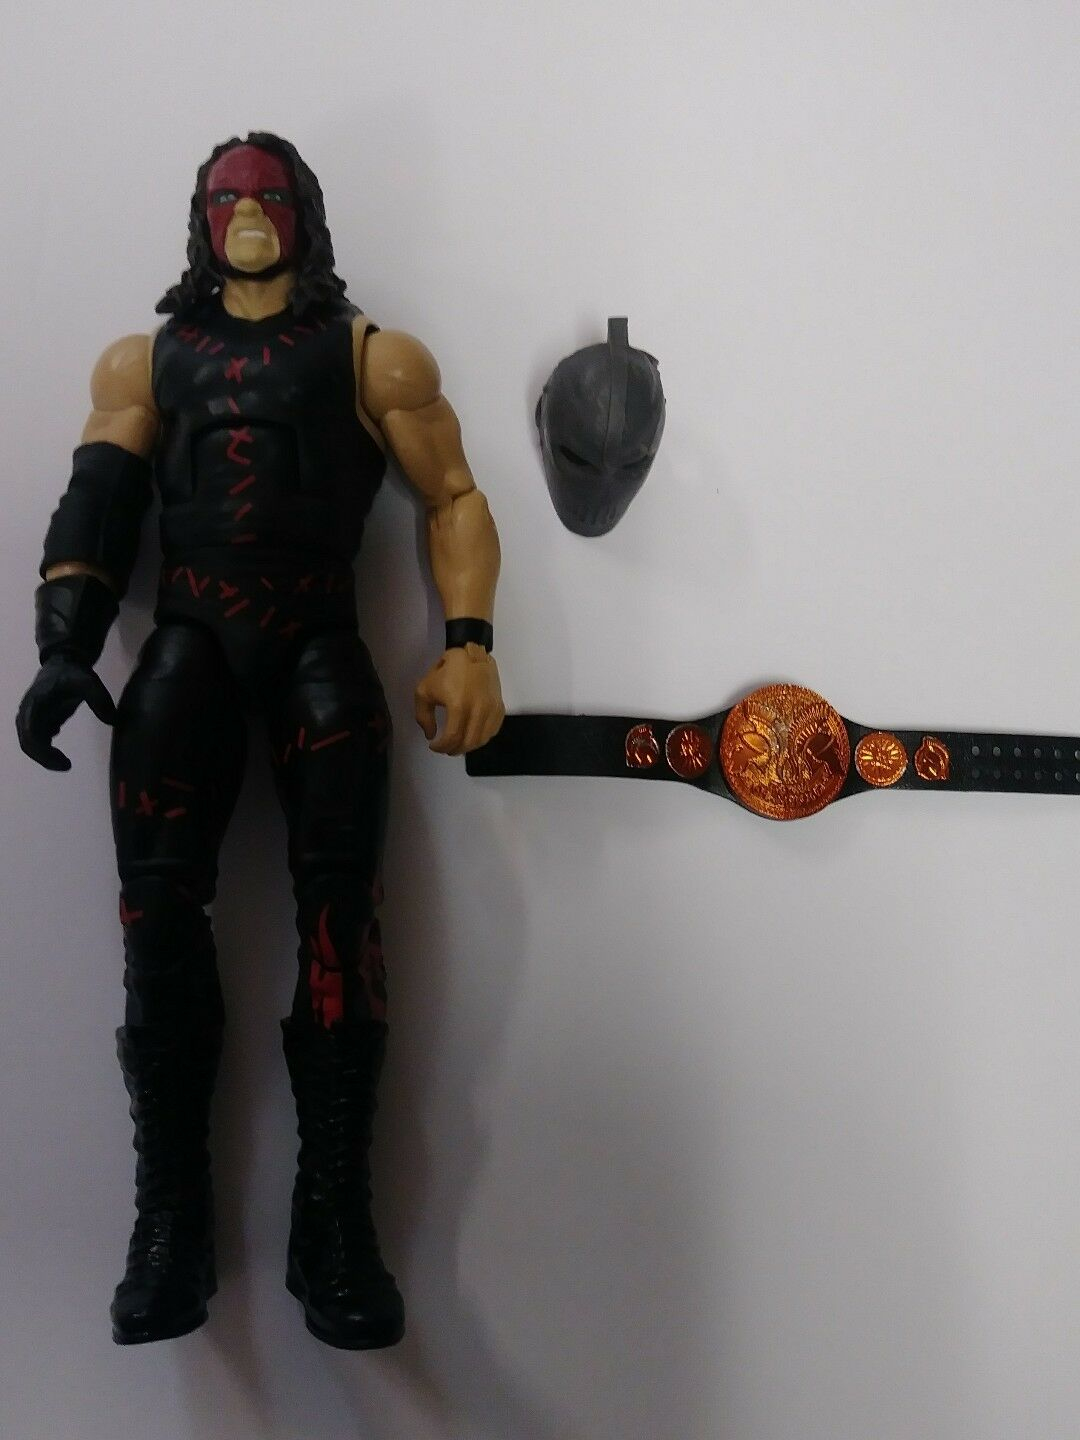 2011 WWE Elite Series Kane Kane Kane Action Figure Complete w Mask & Champions Title Belt 36a7c2